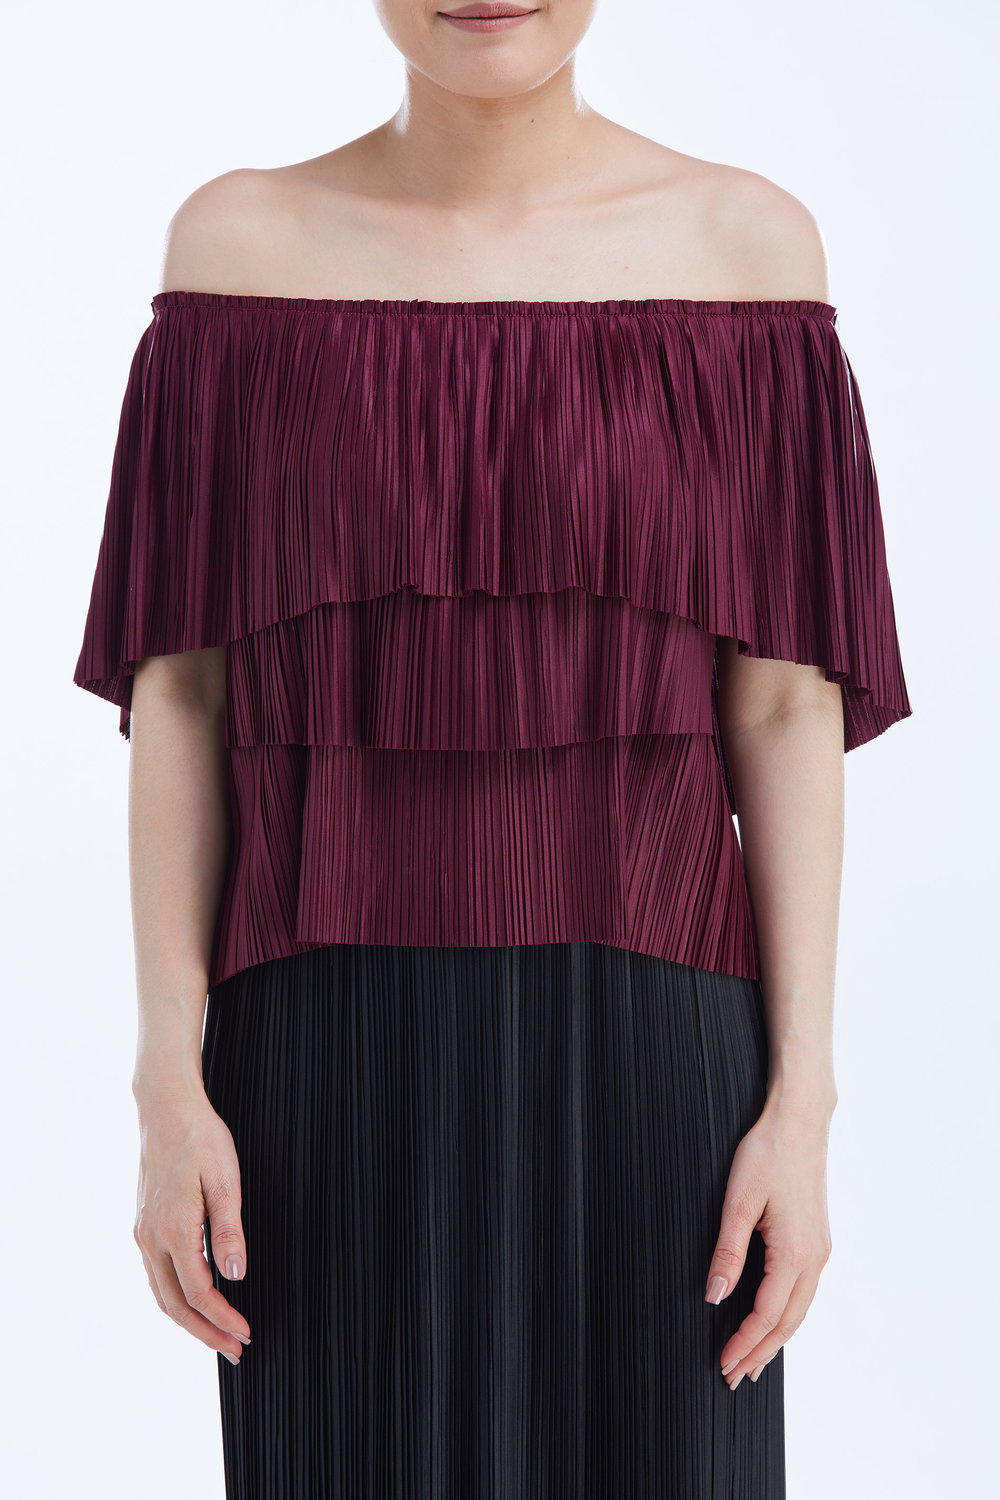 CAMPARI TOP worn with  PLEAT SKIRT